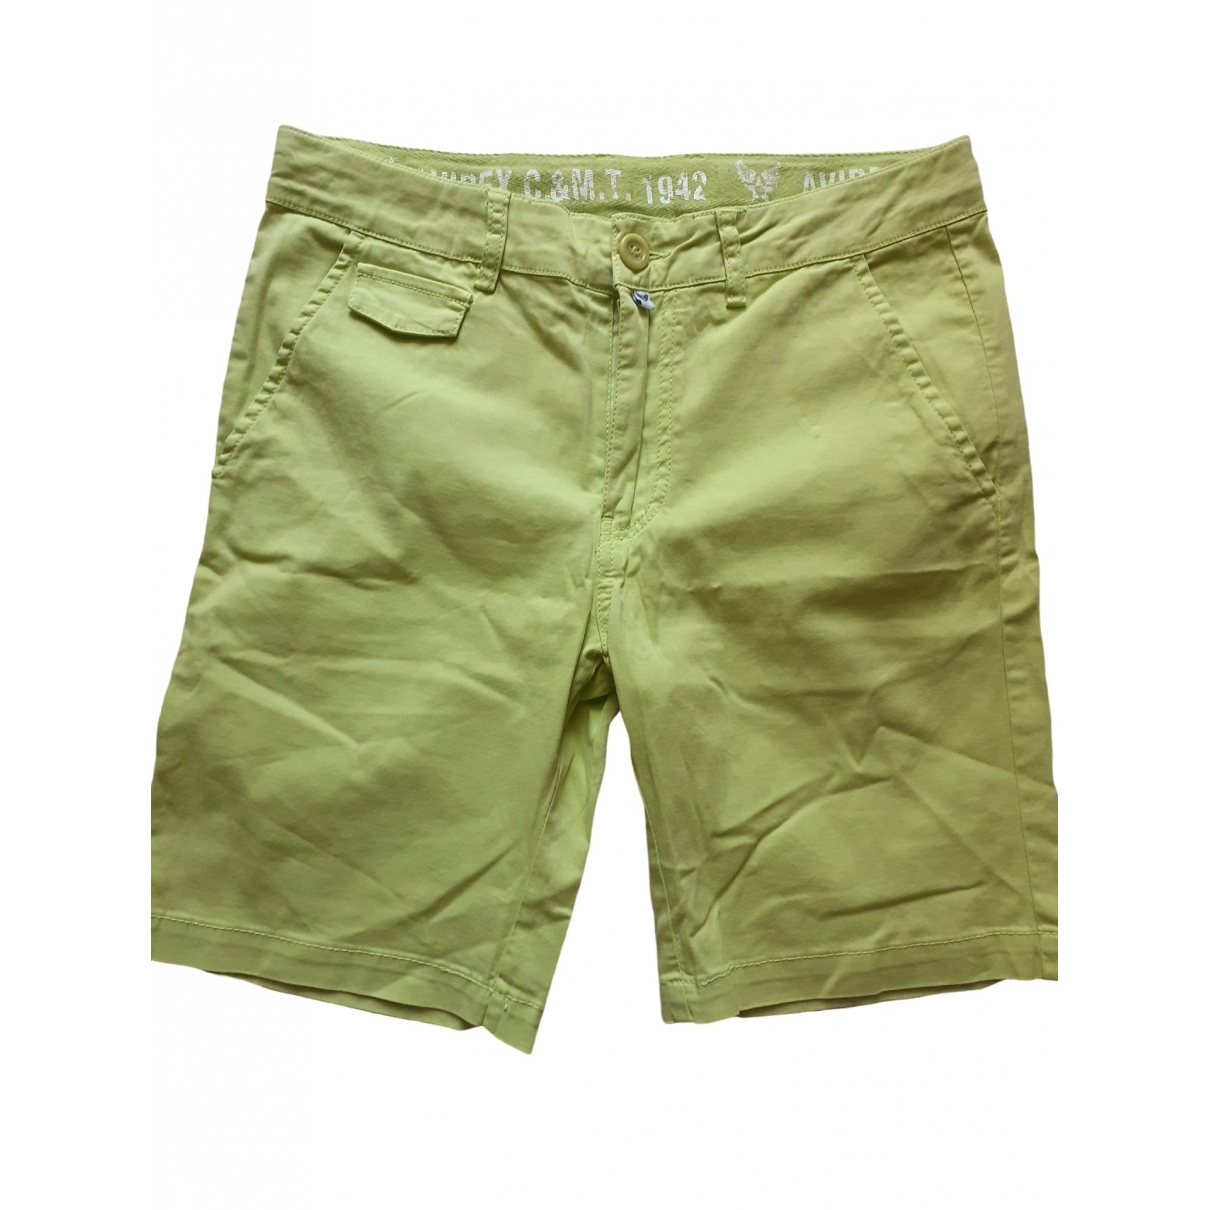 Avirex \N Green Cotton Shorts for Kids 12 years - XS FR